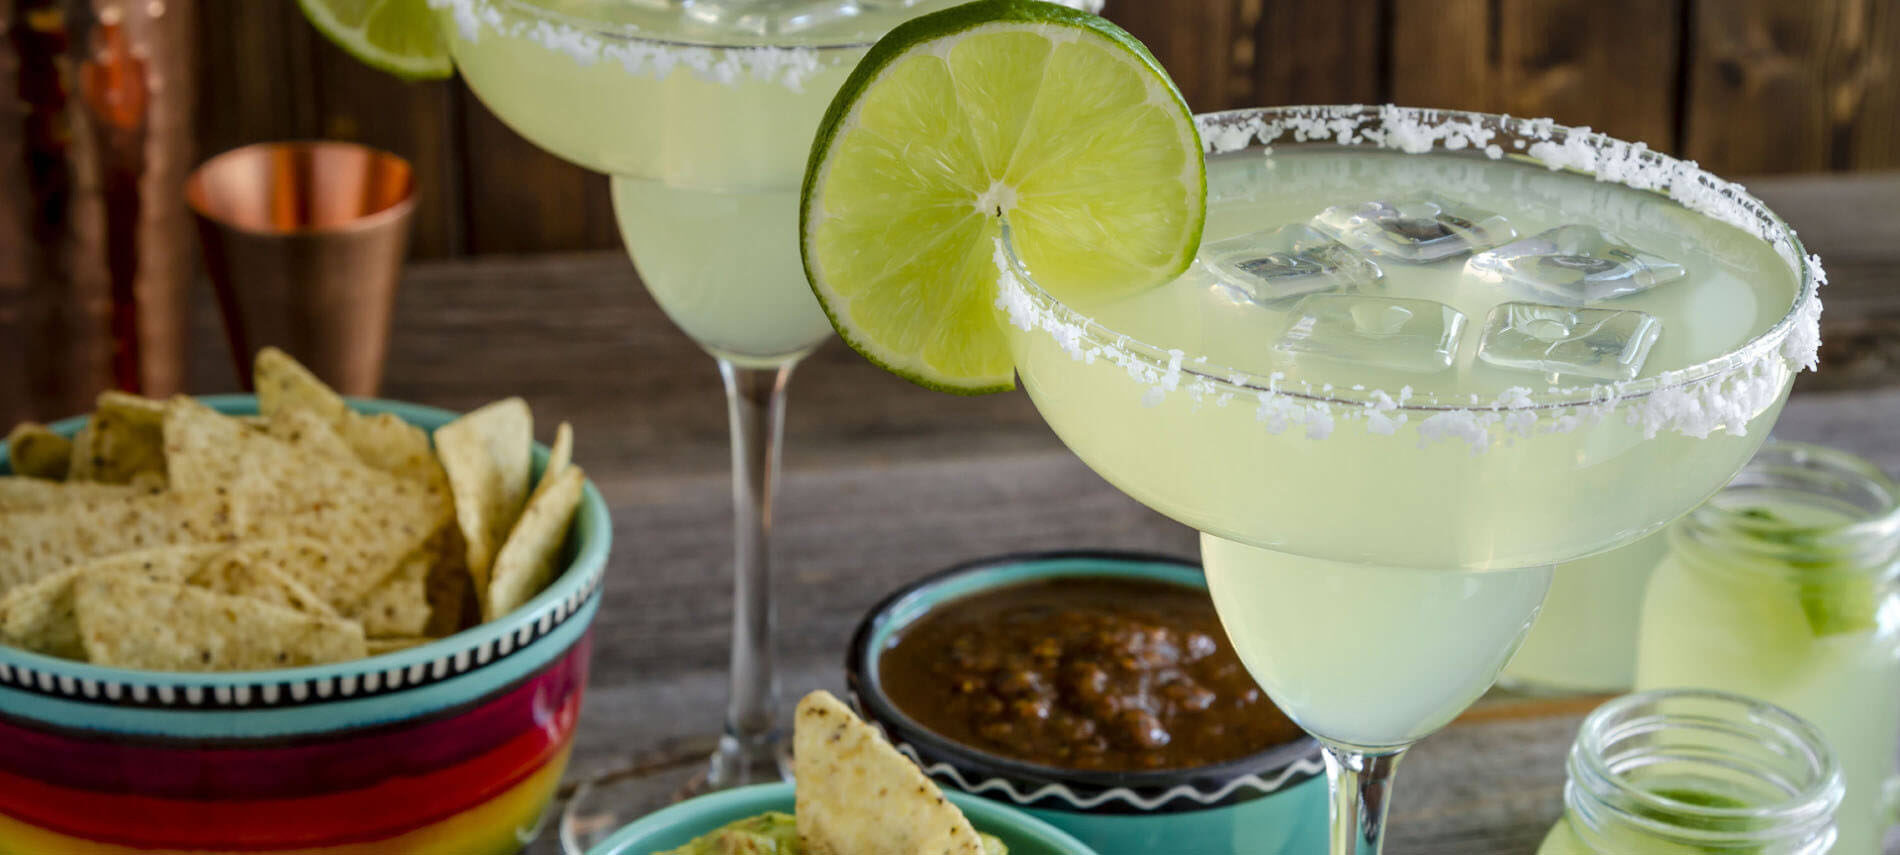 Margaritas with Lime, Chips and Salsa